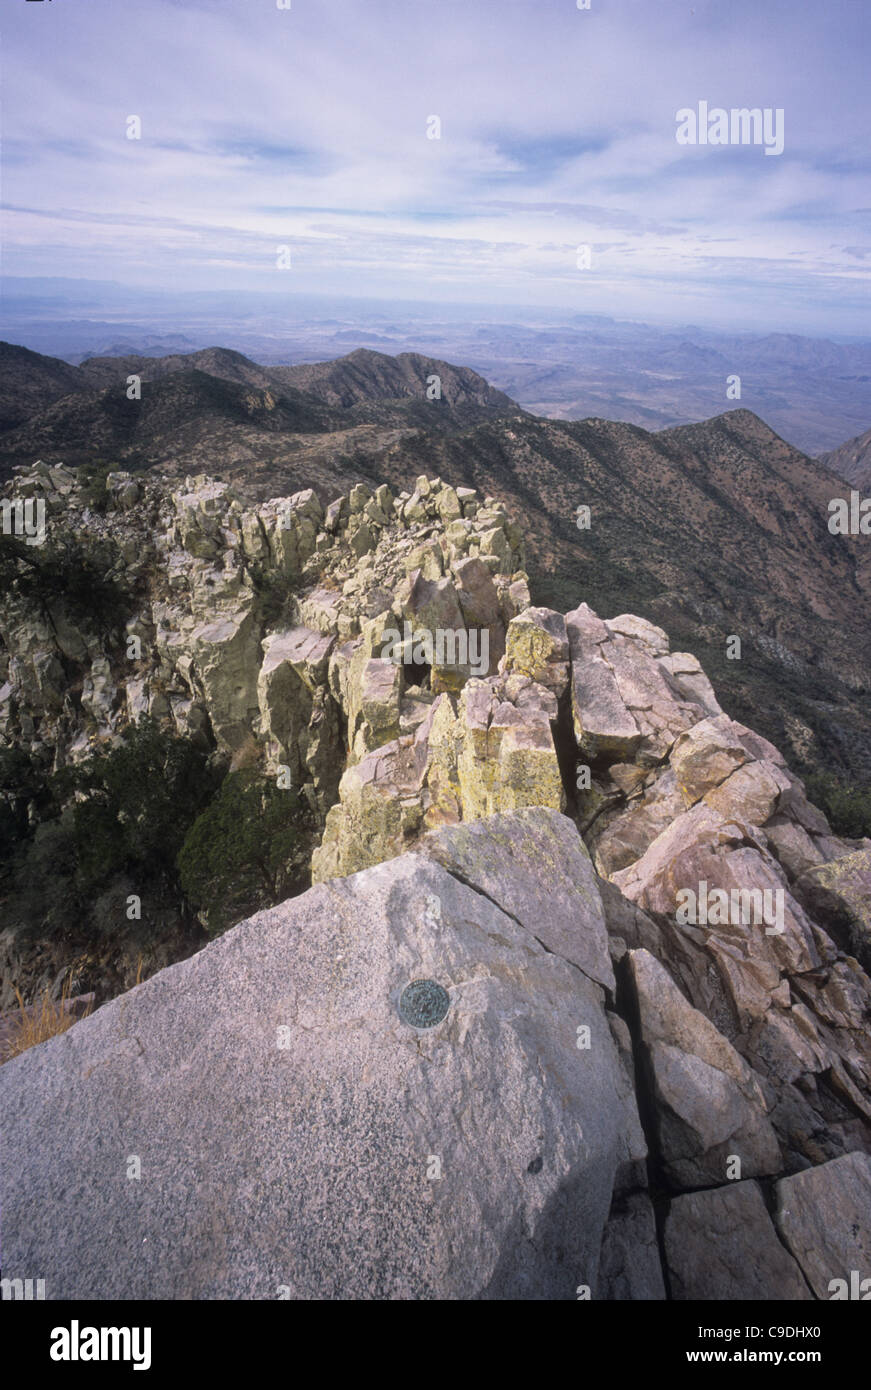 The panoramic view from Emory Peak (7,835 feet) the highest point in Big Bend National Park, Texas is popular with - Stock Image